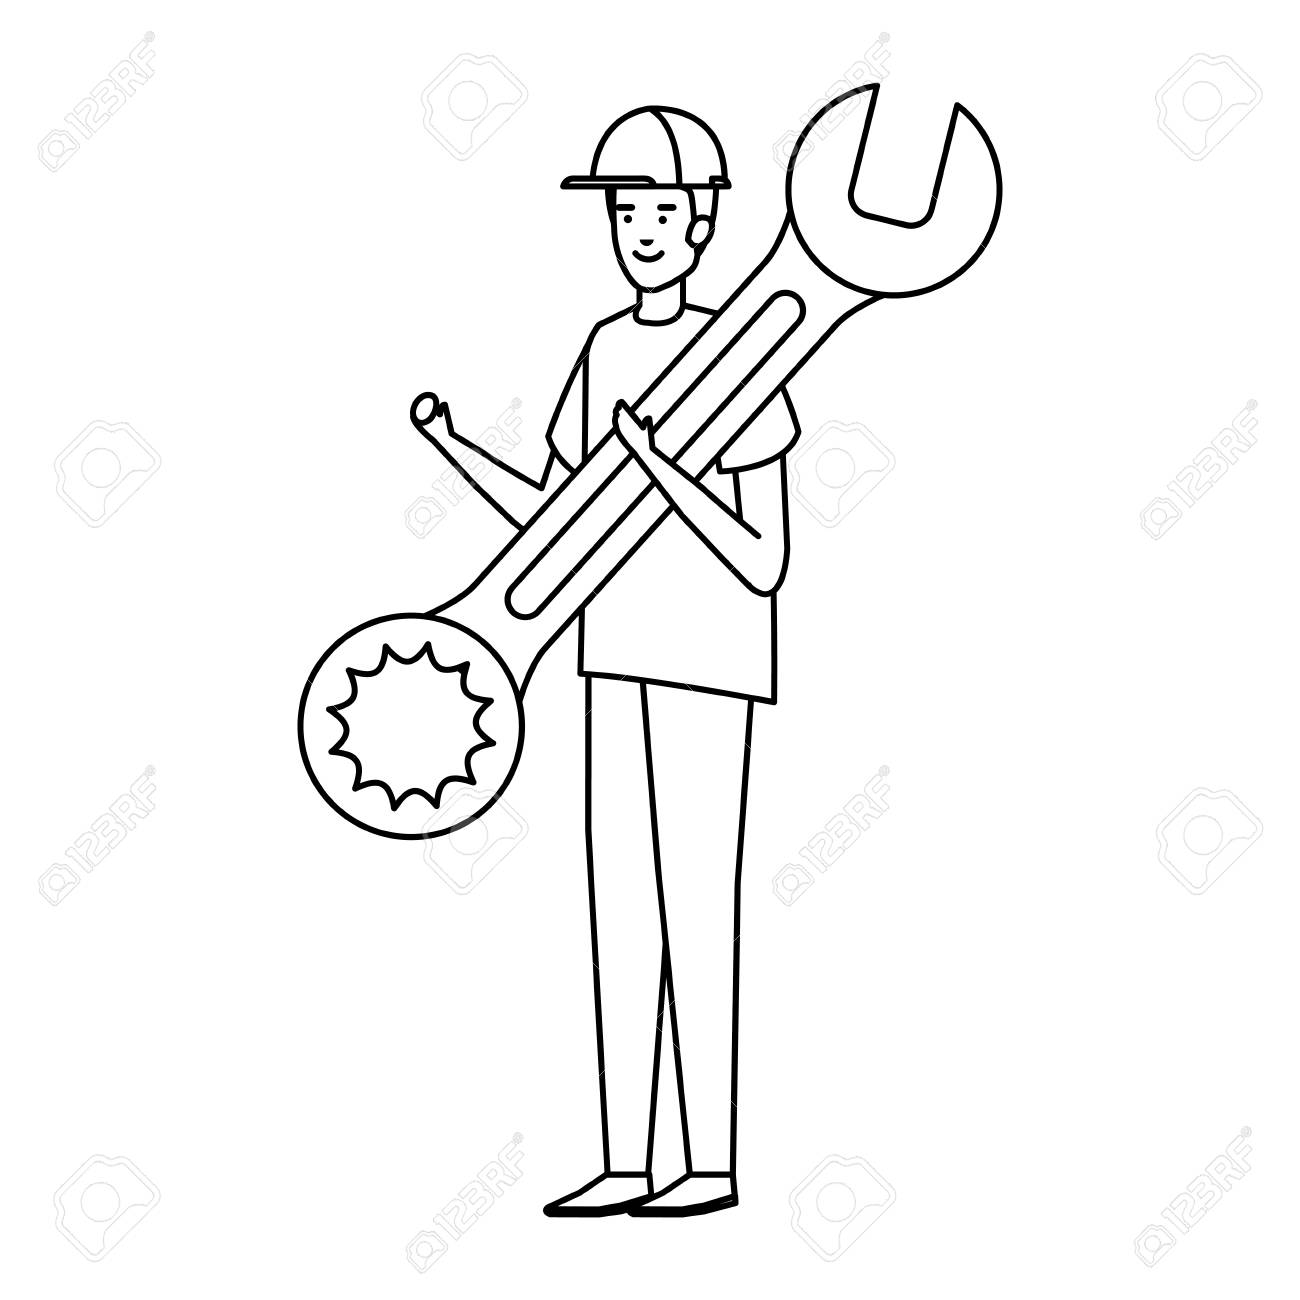 builder worker with helmet and wrench vector illustration design - 120350090